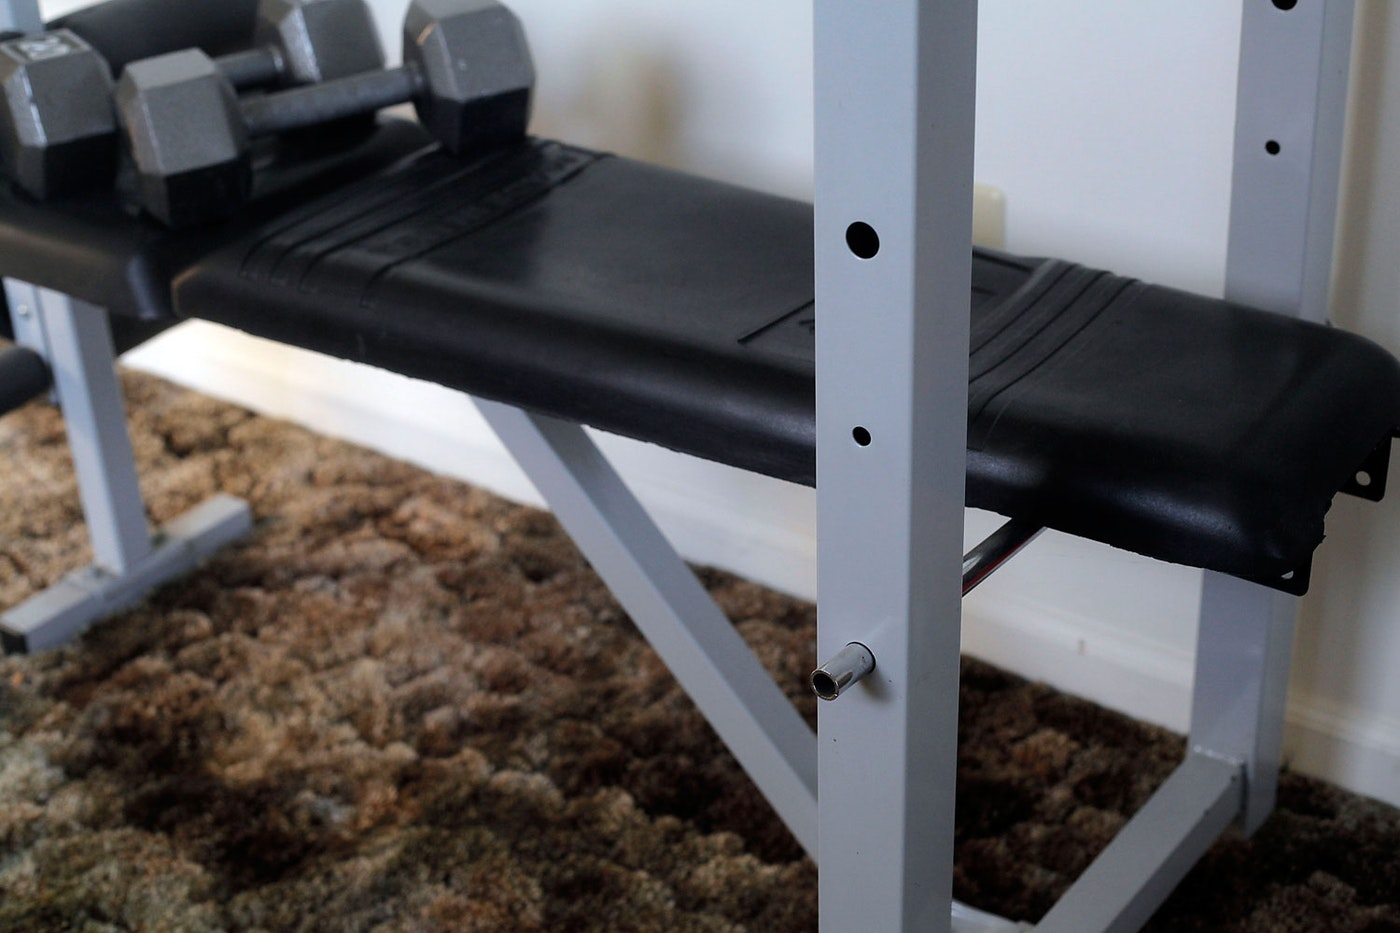 dp fit for life weight bench instructions